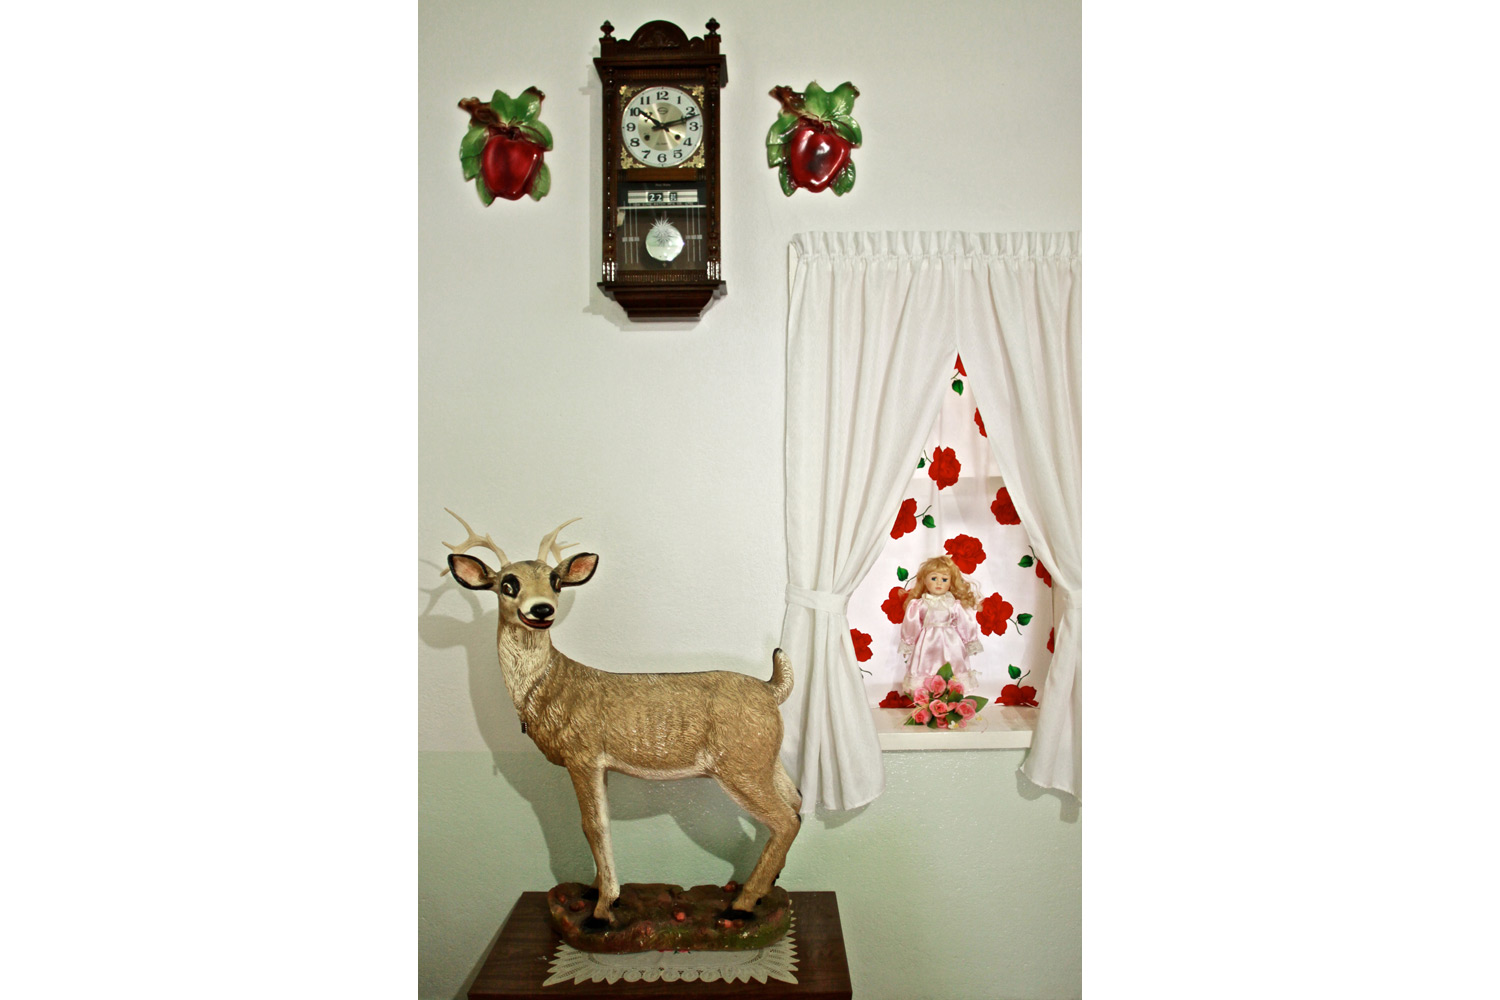 The Peters sister's room. Both the venison and the doll are precious memories from their childhood, Nuevo Ideal, Durango, Mexico, 2010